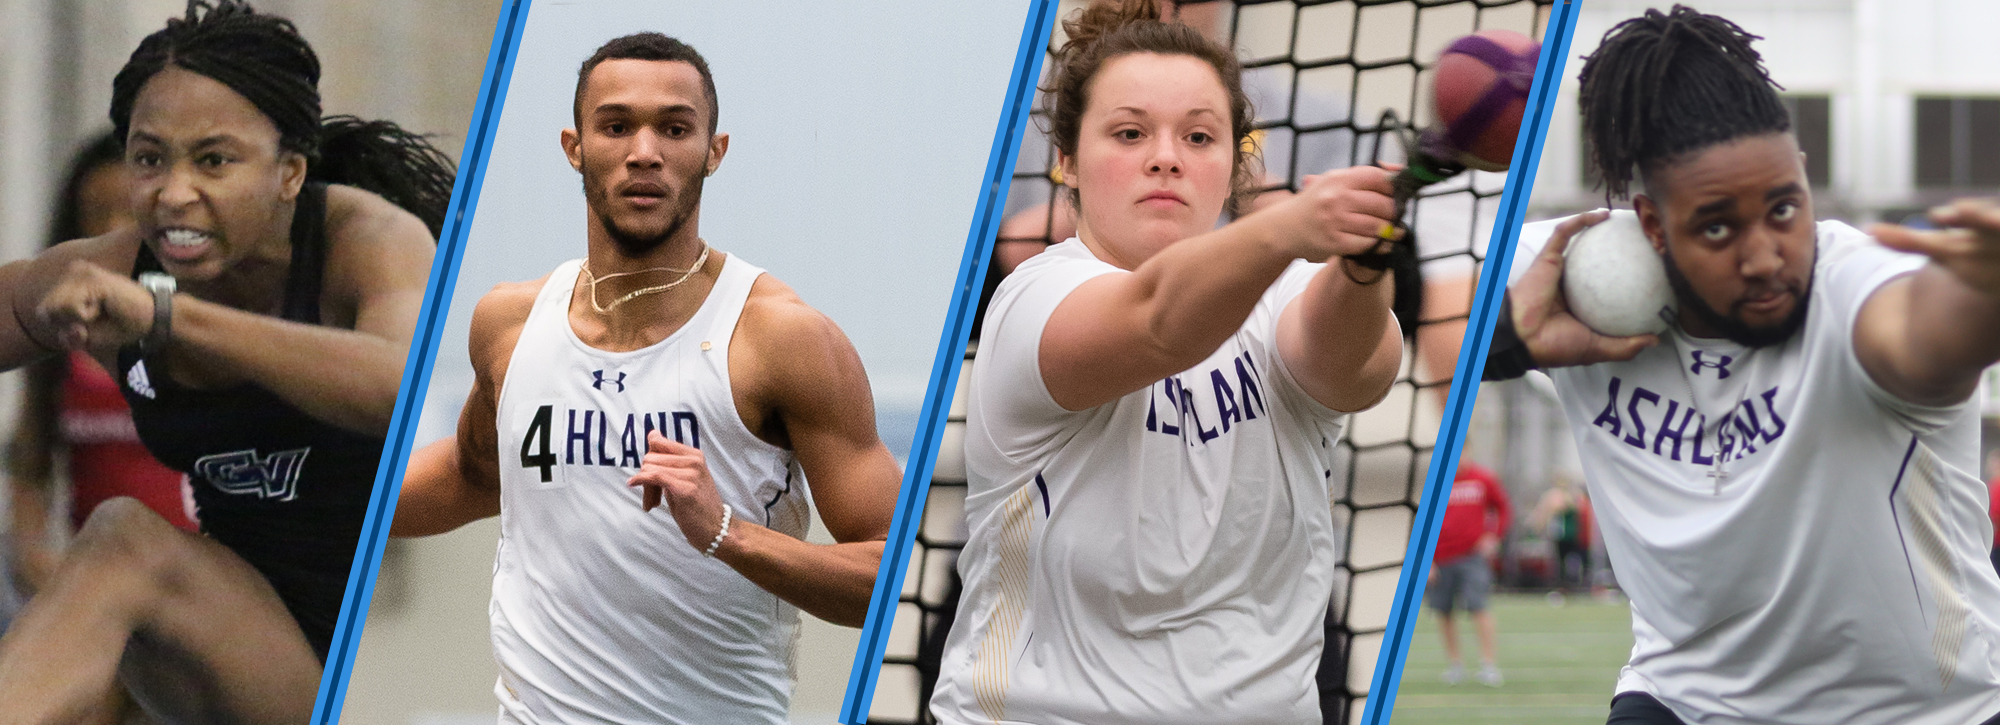 Ashland's Pringle, Helenthal and Hill, and GVSU's Wiggins are Week 5 track and field top athletes